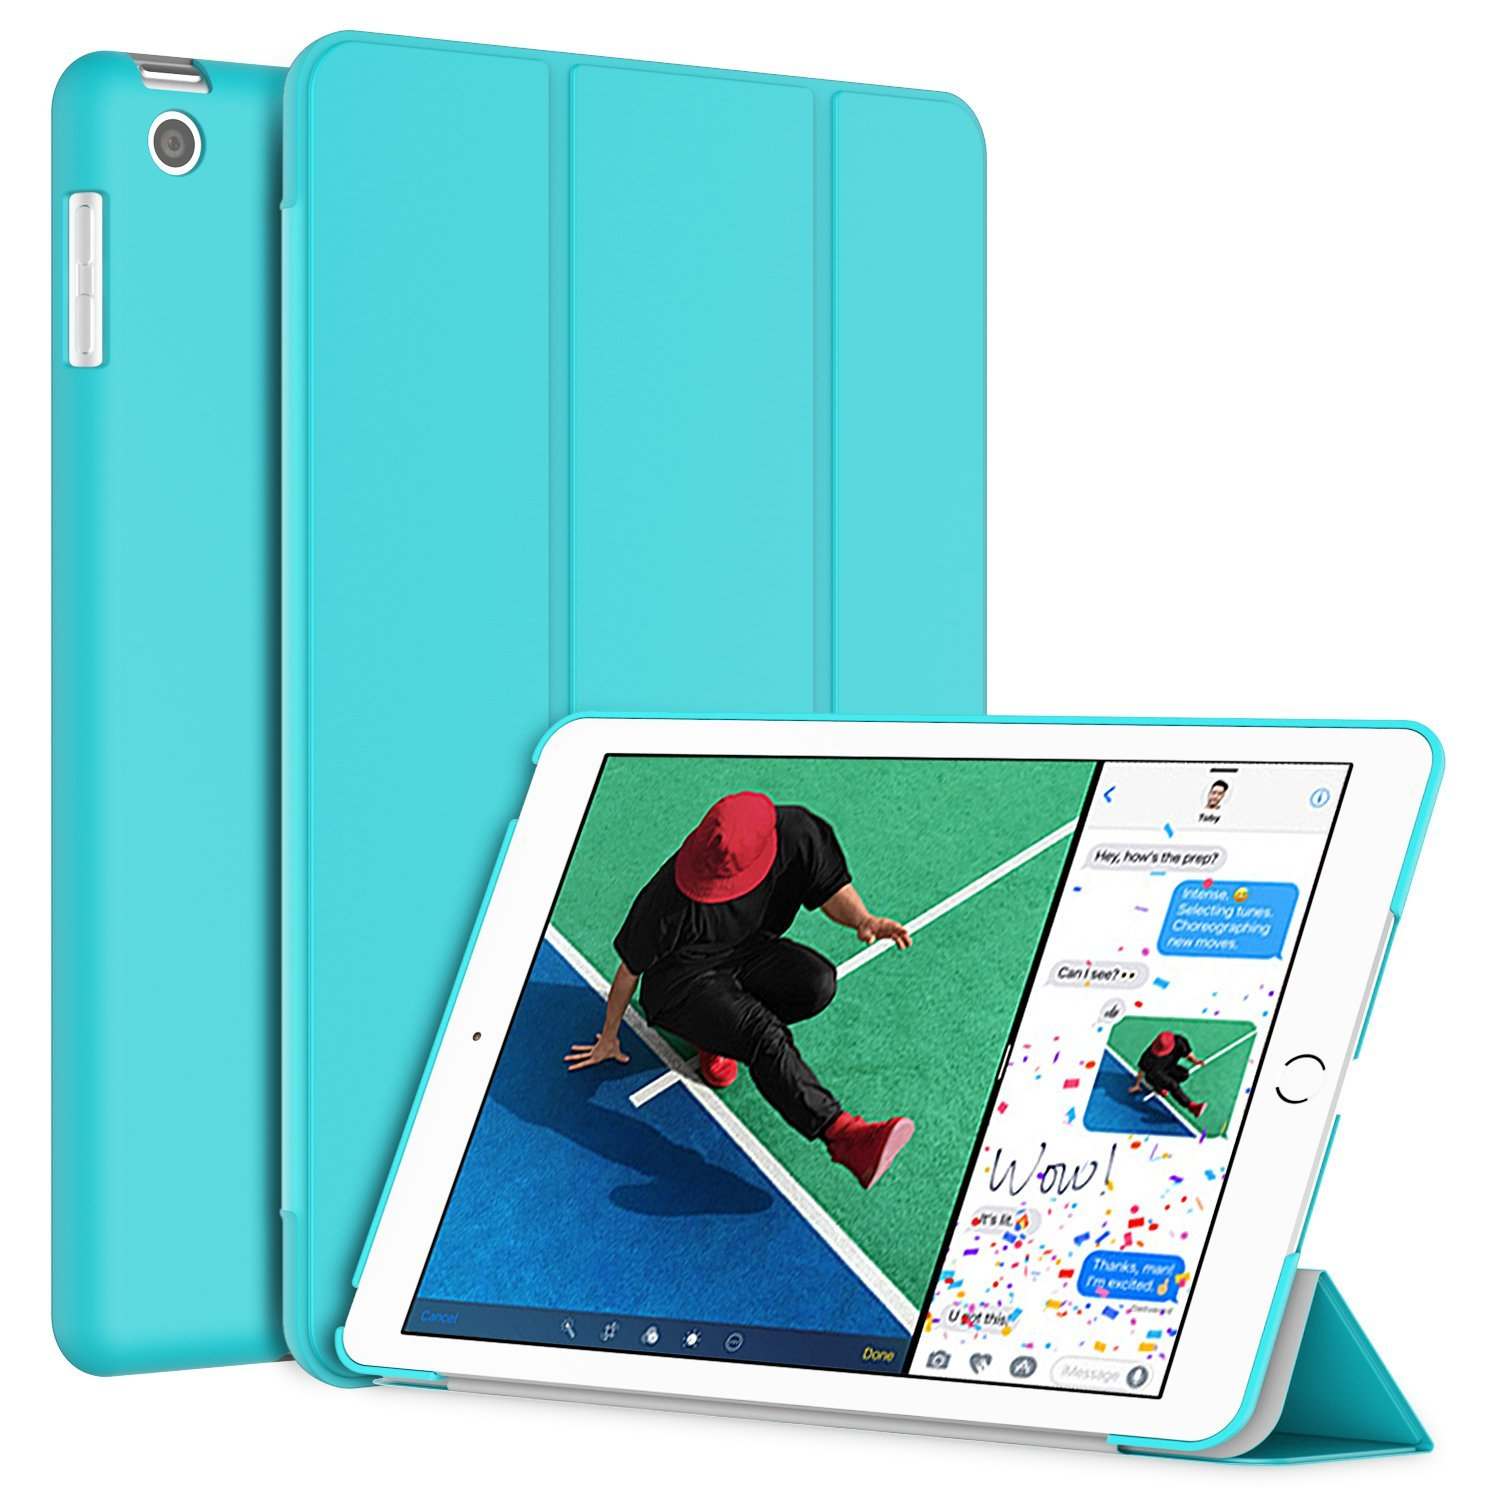 New iPad 2017/2018 iPad 9.7'' Case, SuprJETech Slim-Fit Smart Case Cover for Apple the New iPad 9.7 Inch 2017/2018 Model Lightweight with Stand and Auto Wake/Sleep